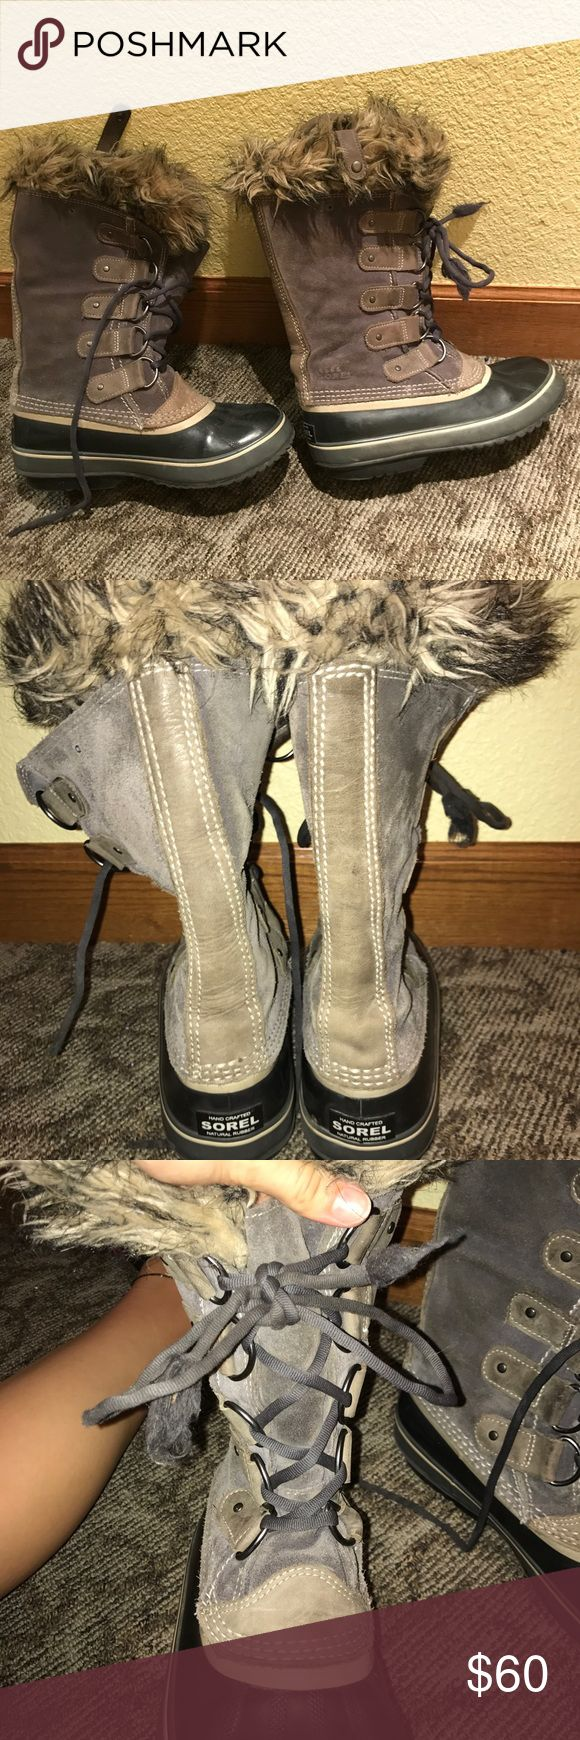 Grey sorel winter boots They are extremely warm and waterproof I wish they still fit me! The only thing they need are new laces and three of the clips on the top are broken but they are not noticeable and don't affect the fit of the boot Sorel Shoes Winter & Rain Boots